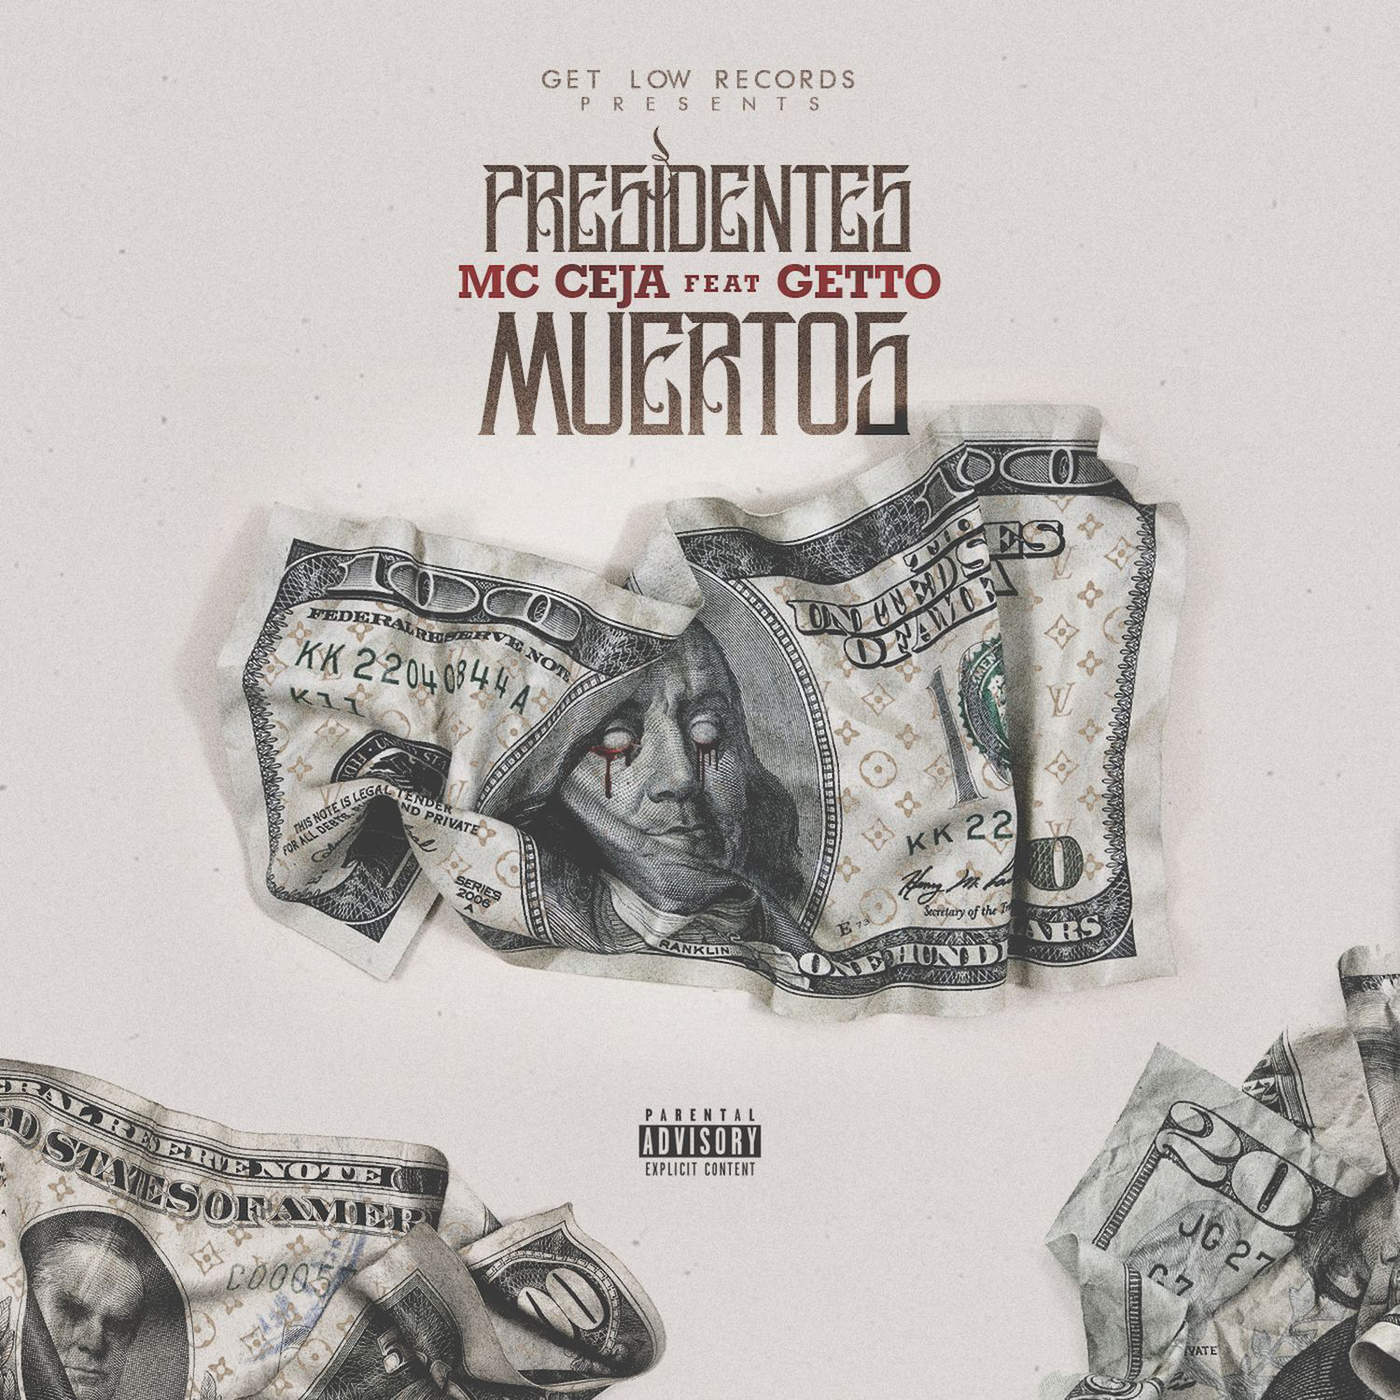 MC Ceja - Presidentes Muertos (feat. Getto) - Single